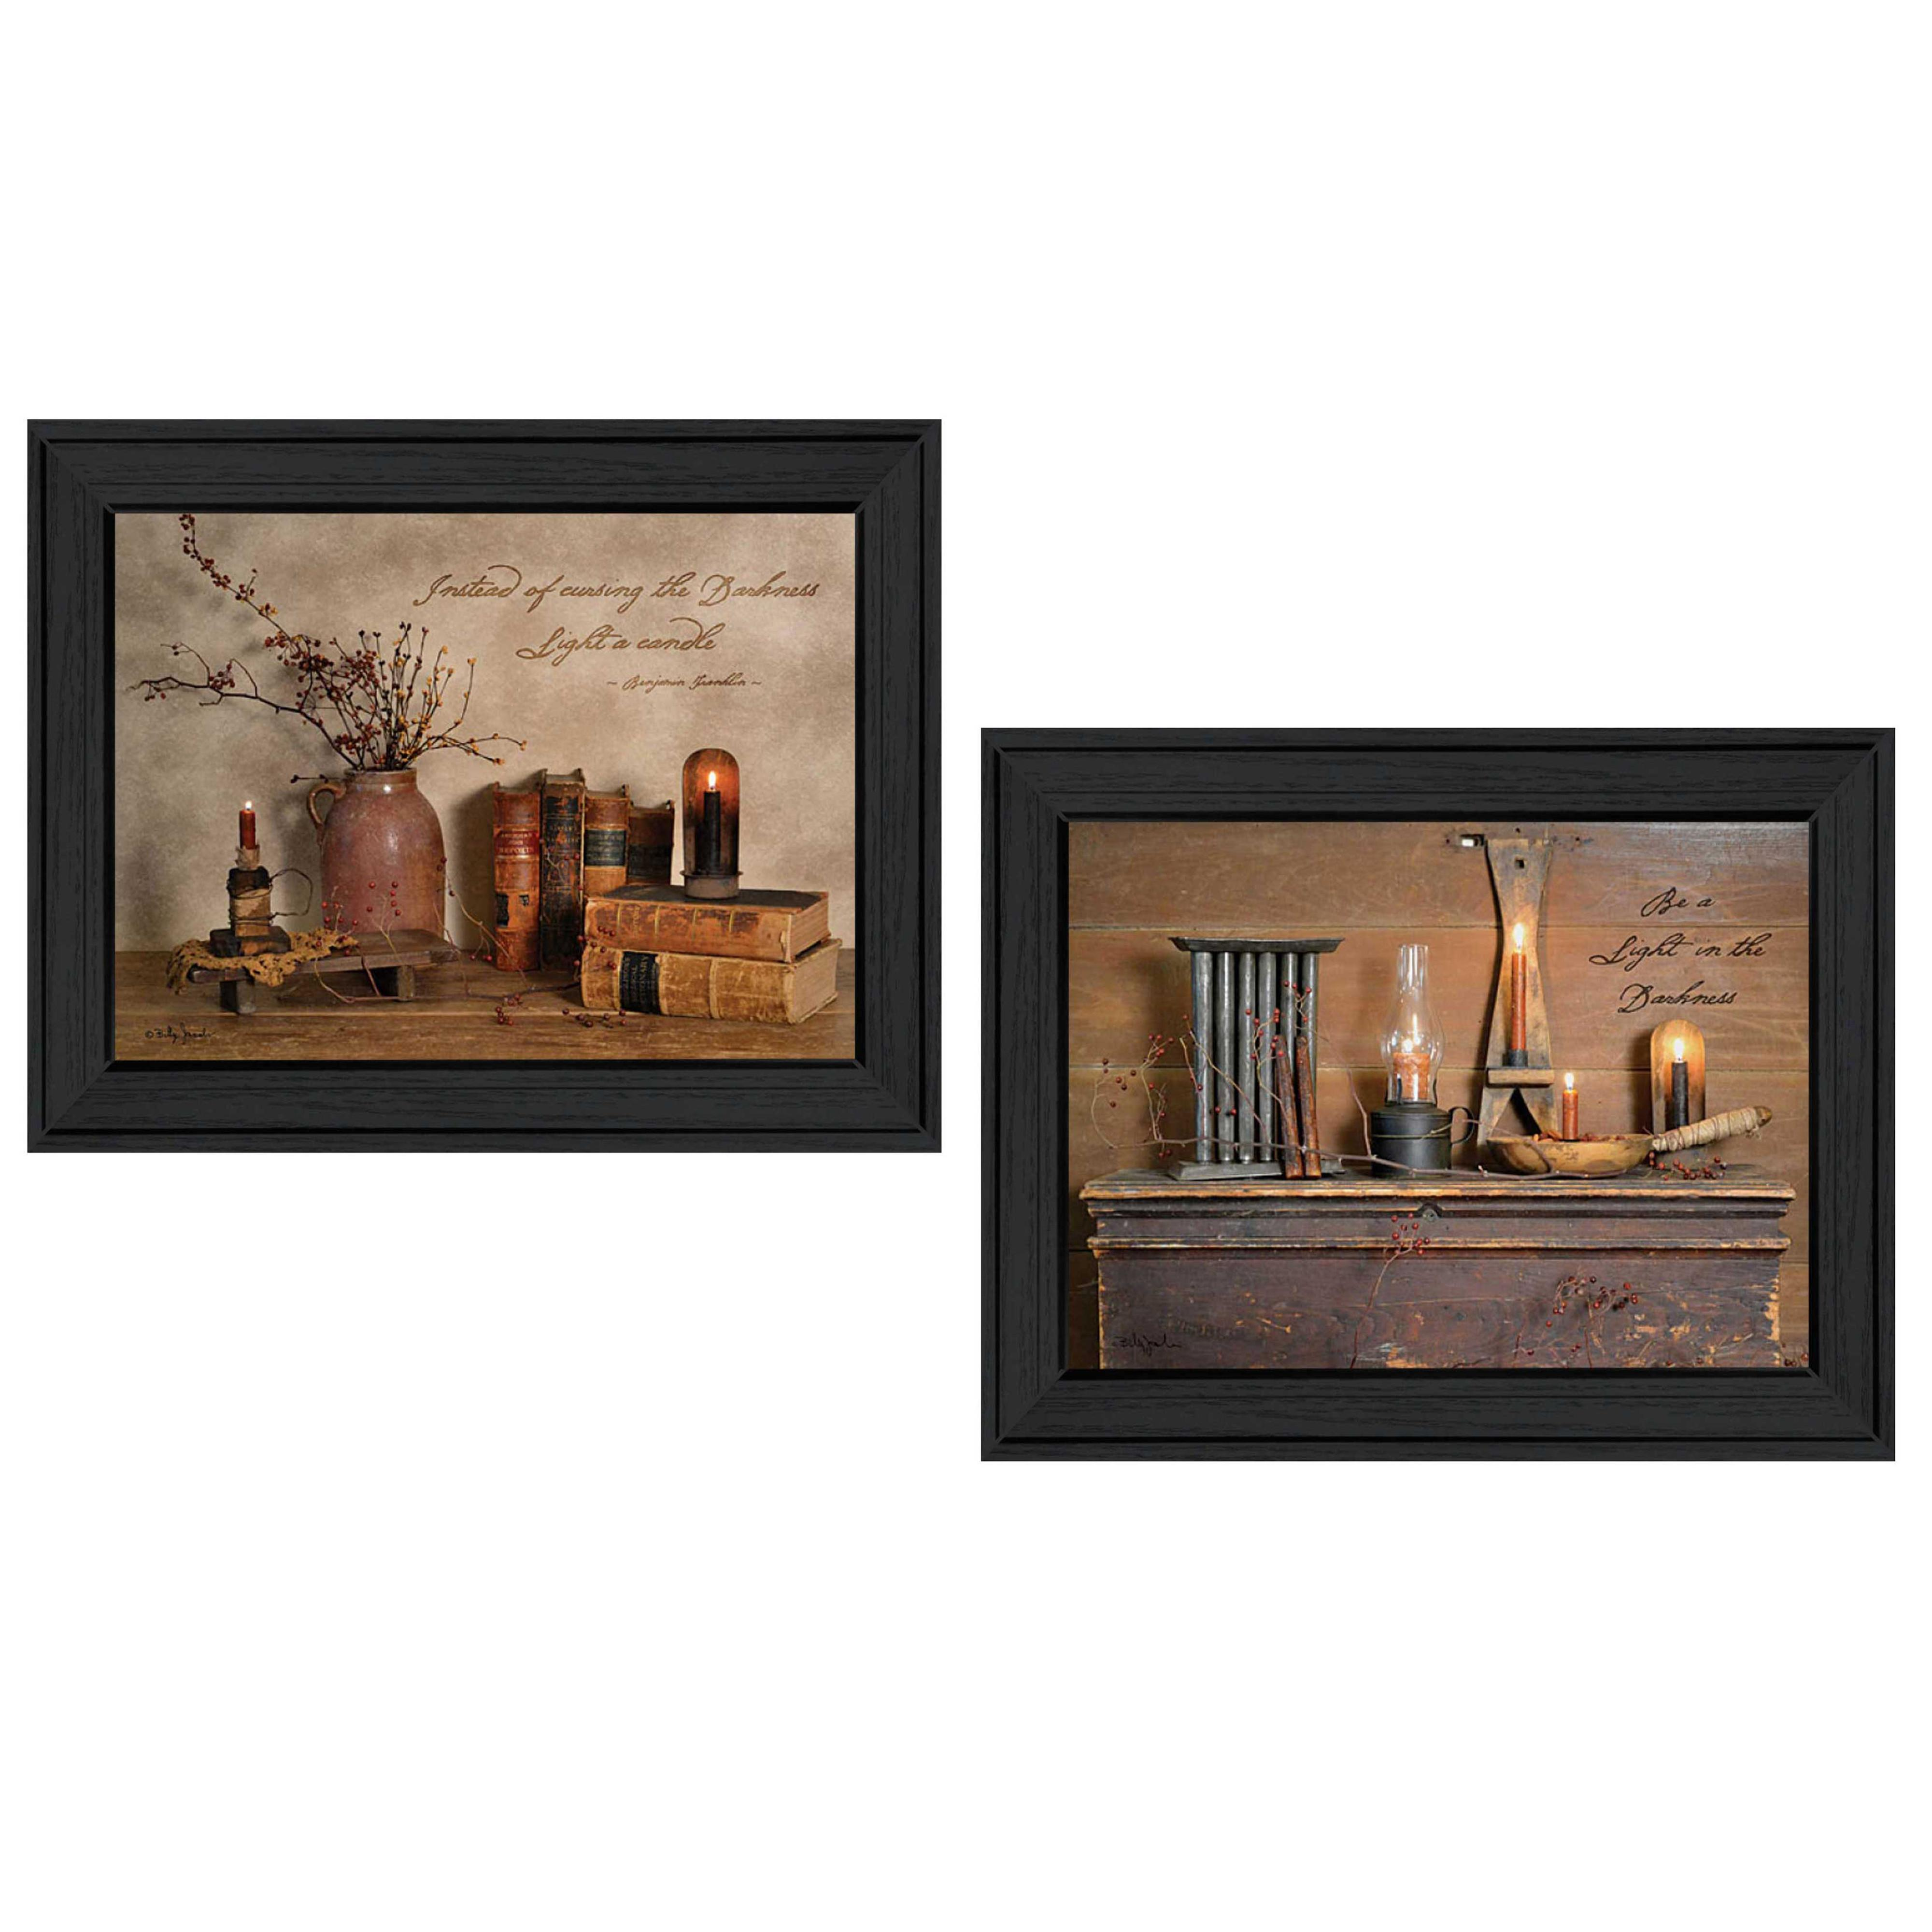 Trendy Decor Candles Billy Jacobs Piece Framed